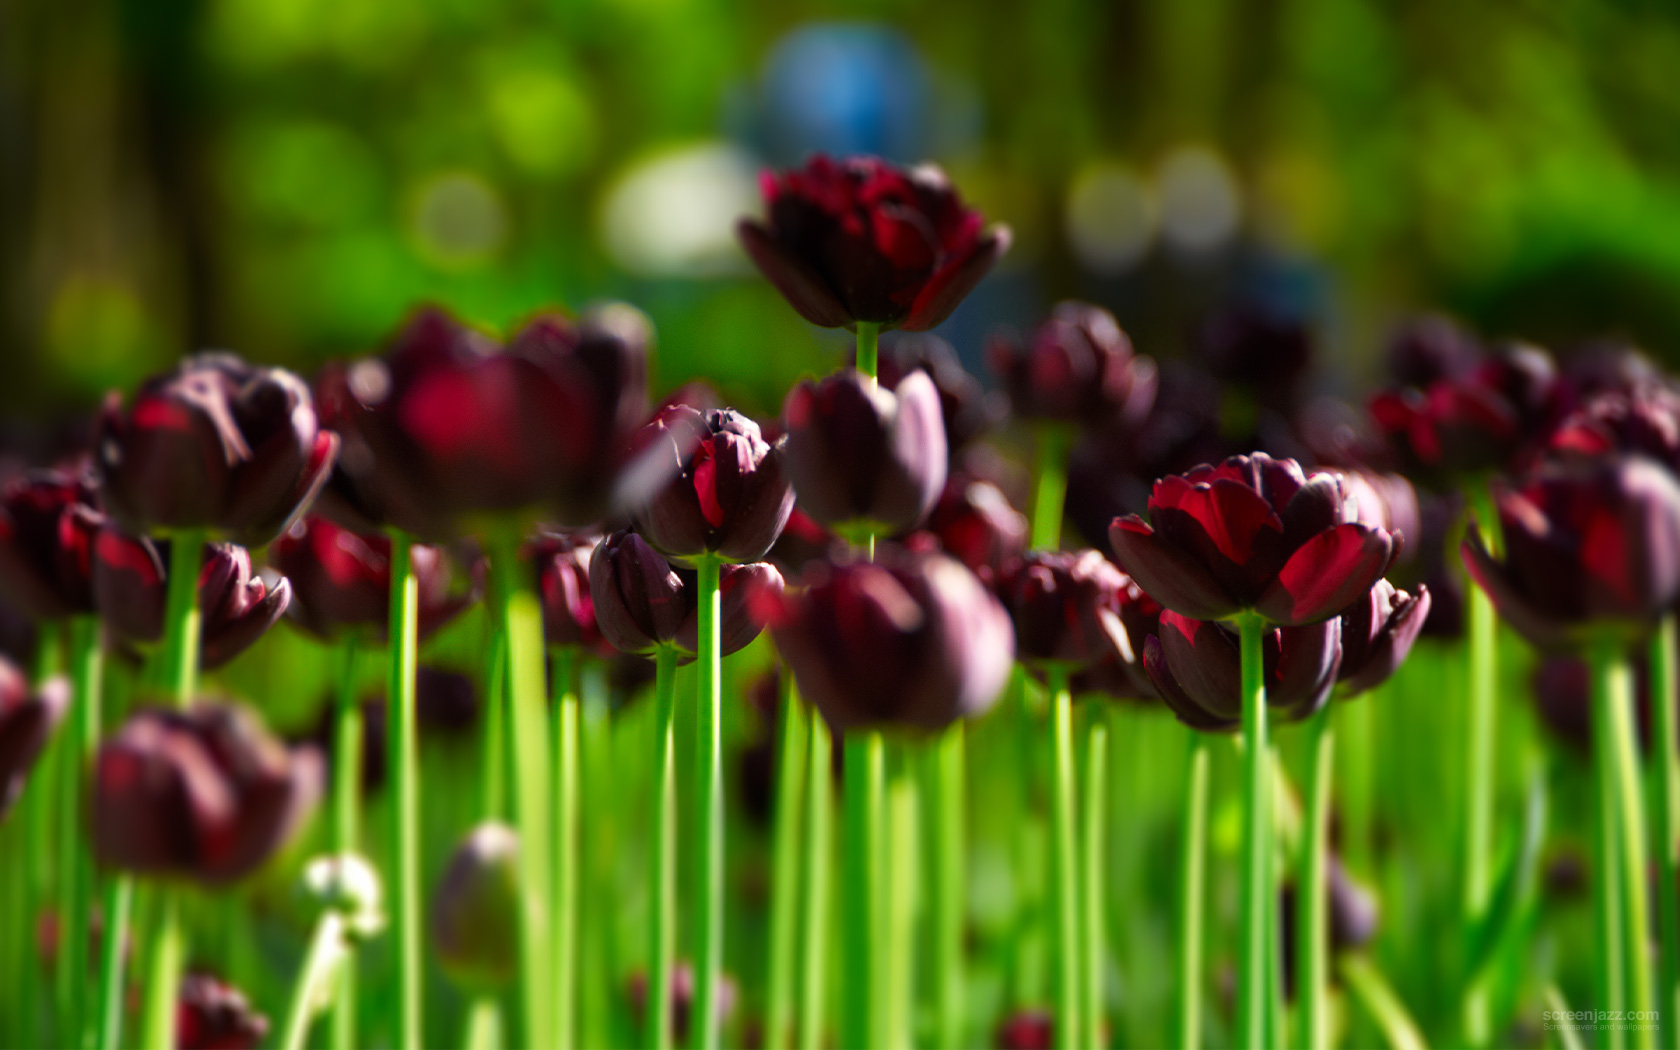 dark purple tulips 1680x1050 download high quality hd wallpapers for